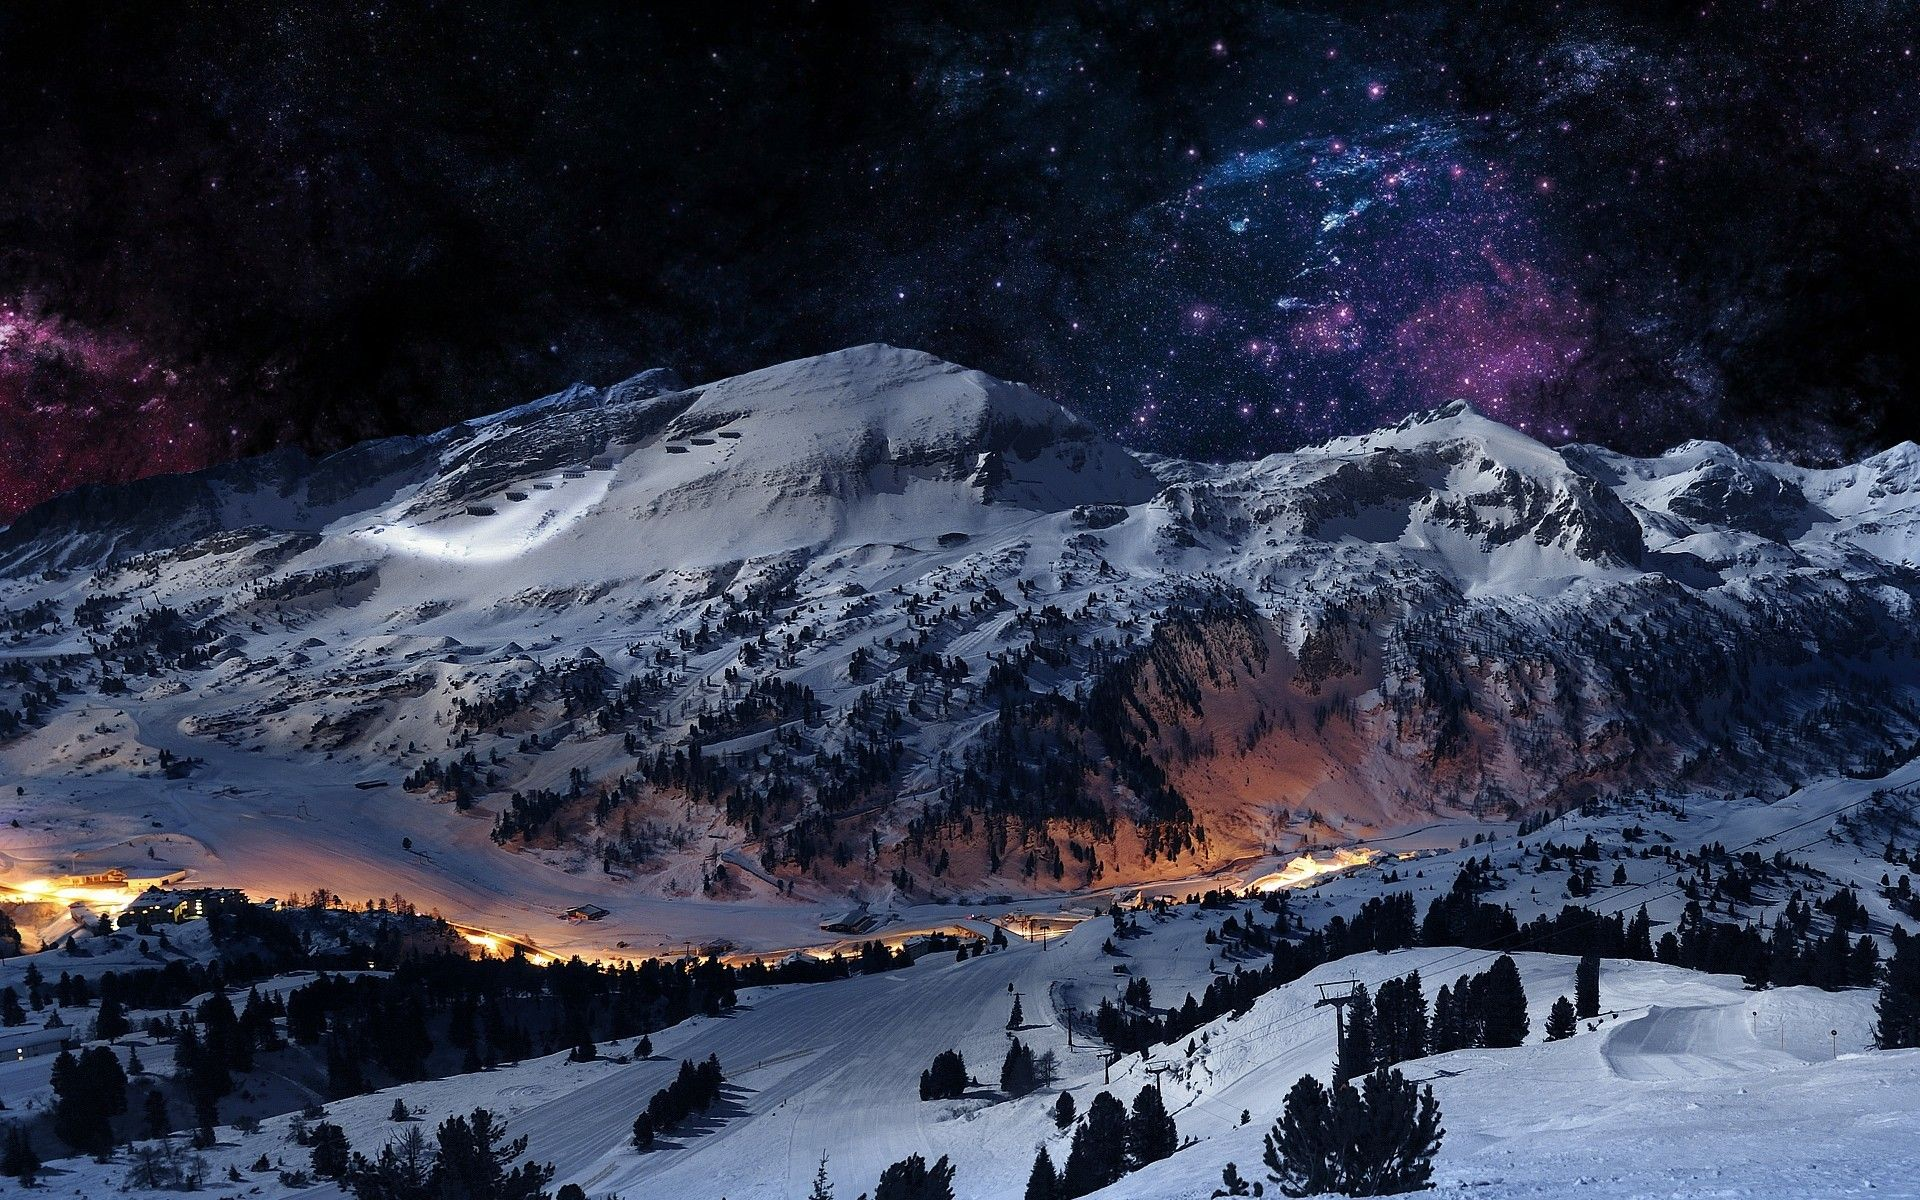 Winter Night Sky Wallpapers Top Free Winter Night Sky Backgrounds Wallpaperaccess